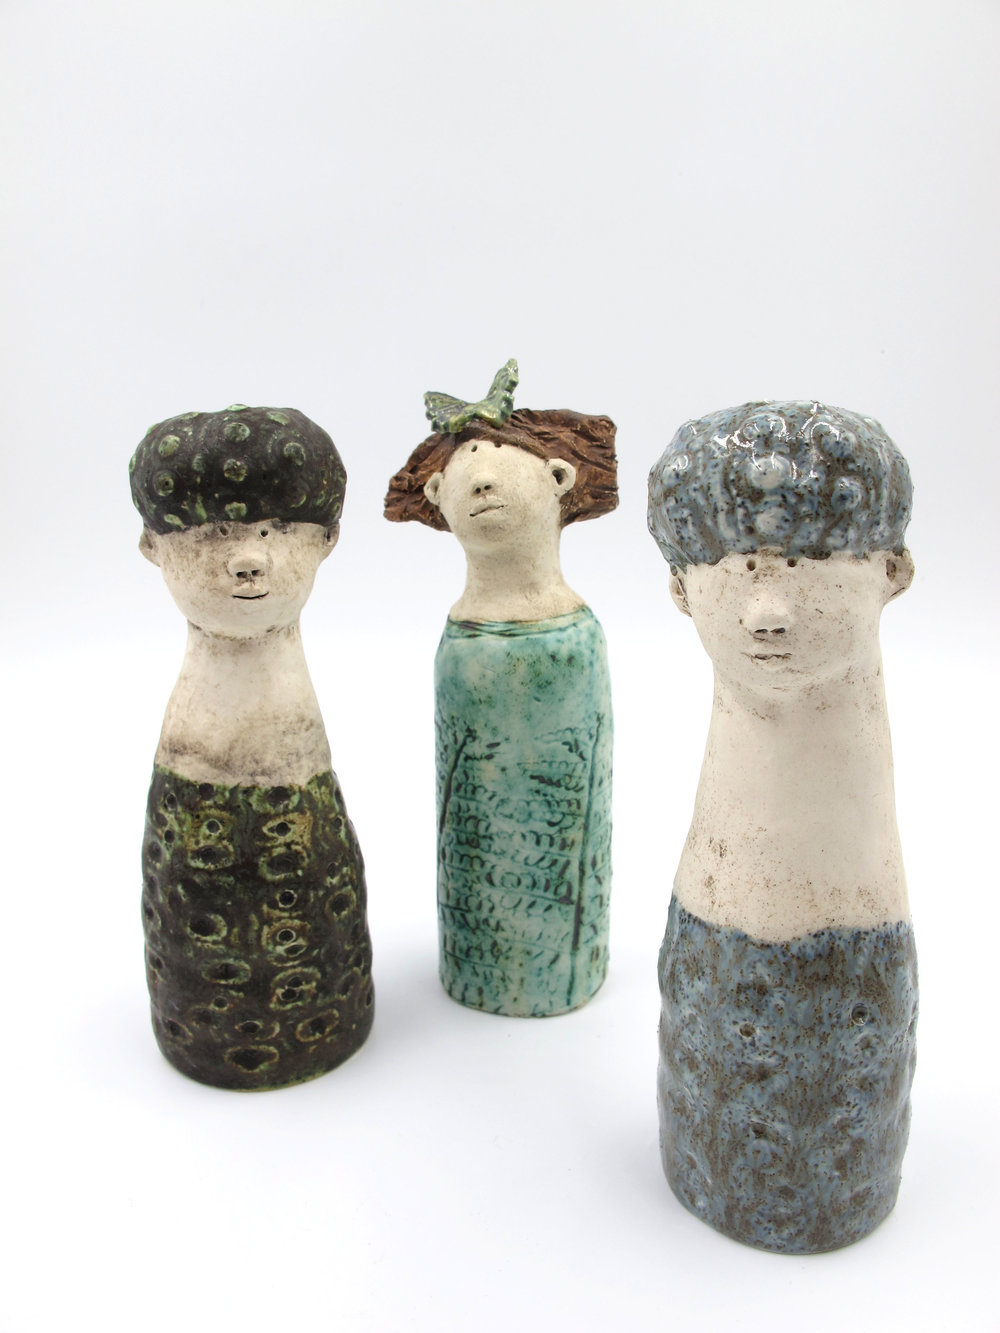 Handmade ceramic figures by Victoria Atkinson